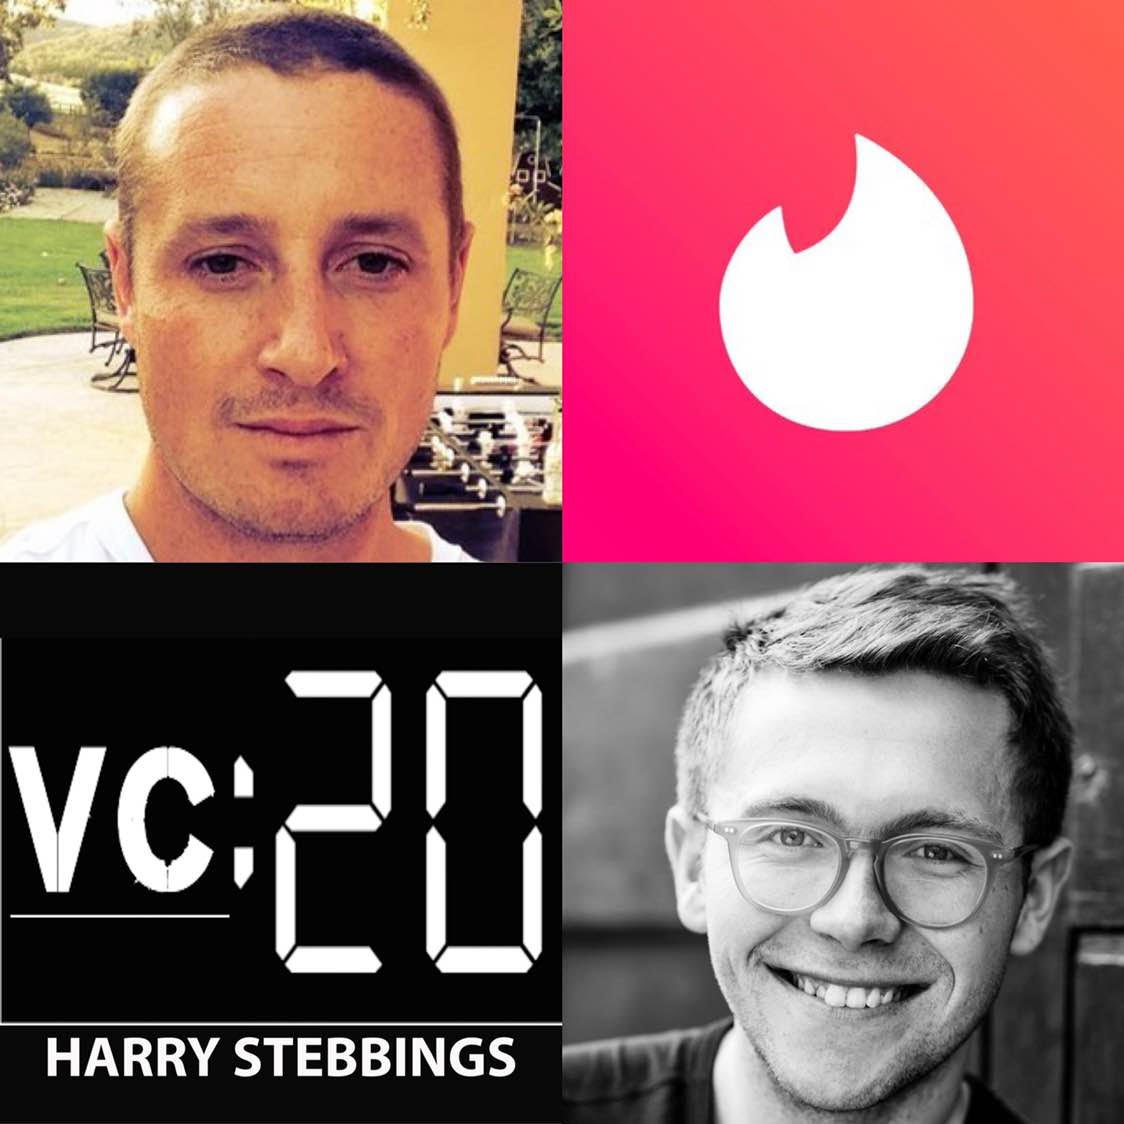 20VC: Former Tinder CPO Brian Norgard on His Biggest Product Takeaways from His Contribution to The Top Grossing App in The World, The Top 10 Reasons Why Products Fail Today & How The Best Founders Assess Risk and Use It